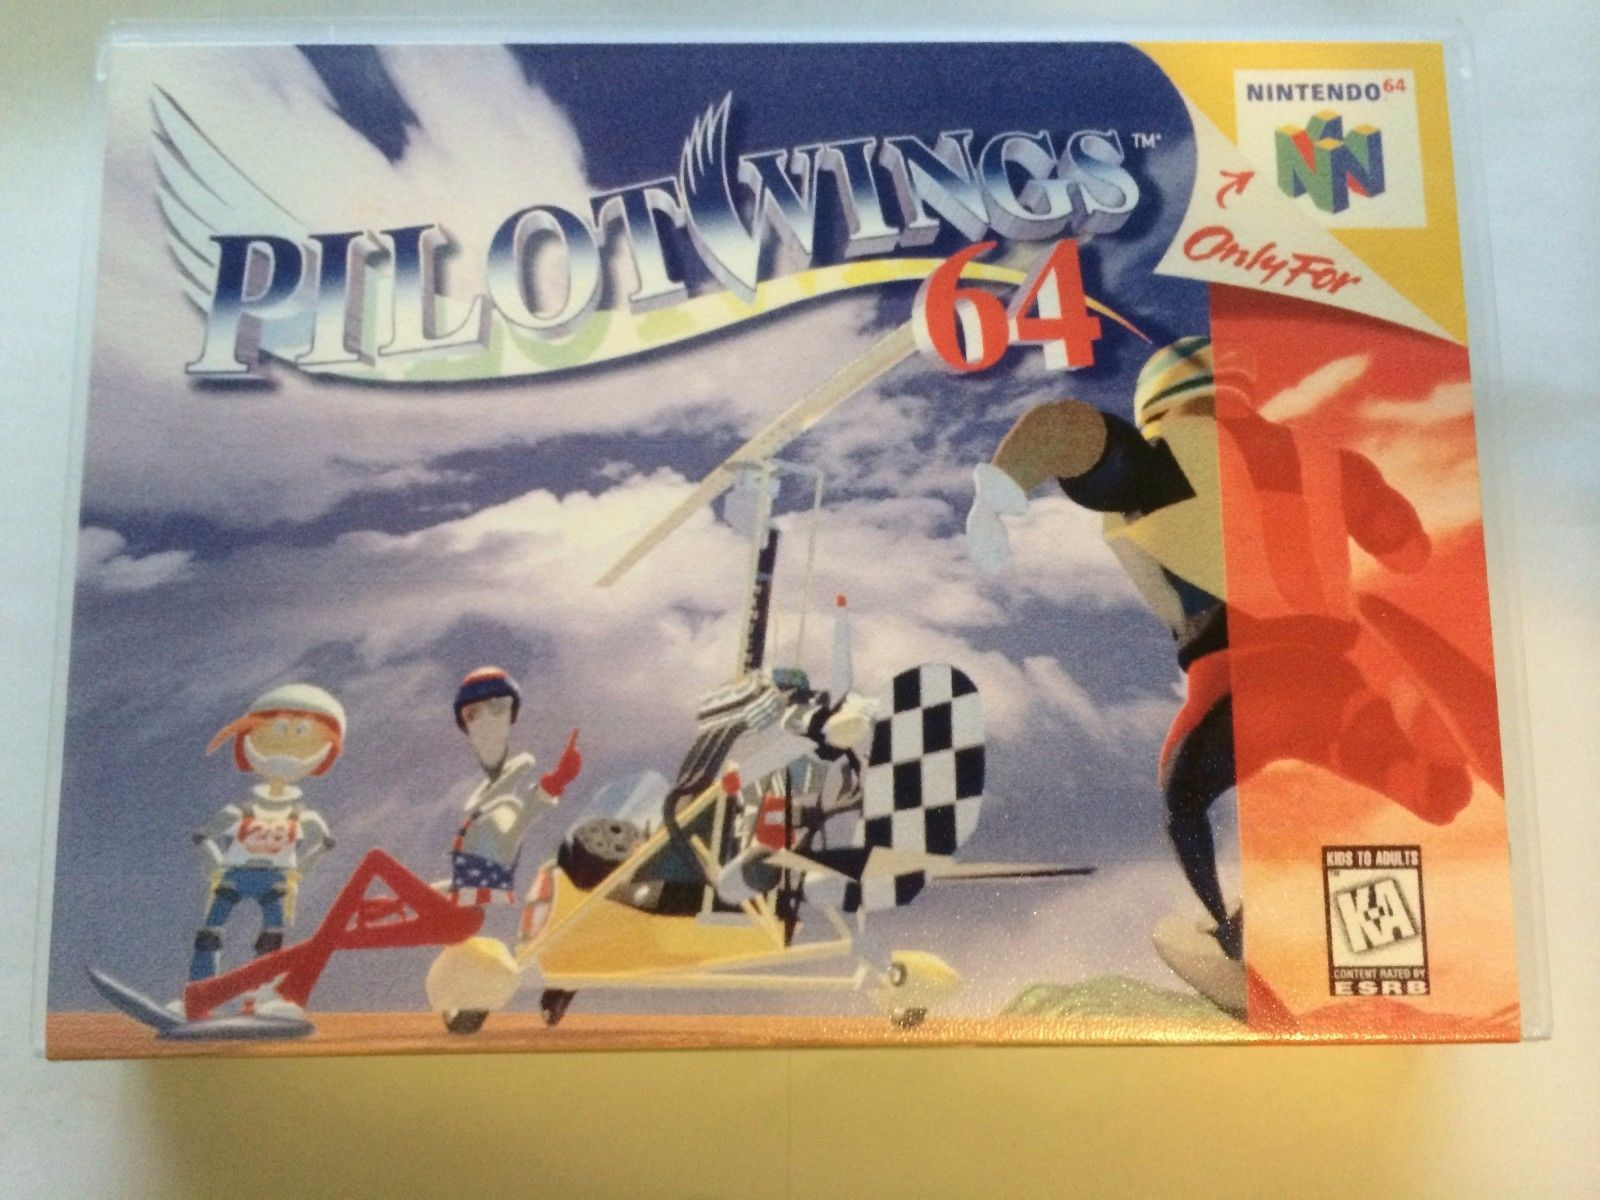 Pilotwings 64 - Nintendo 64 - Replacement Case - No Game